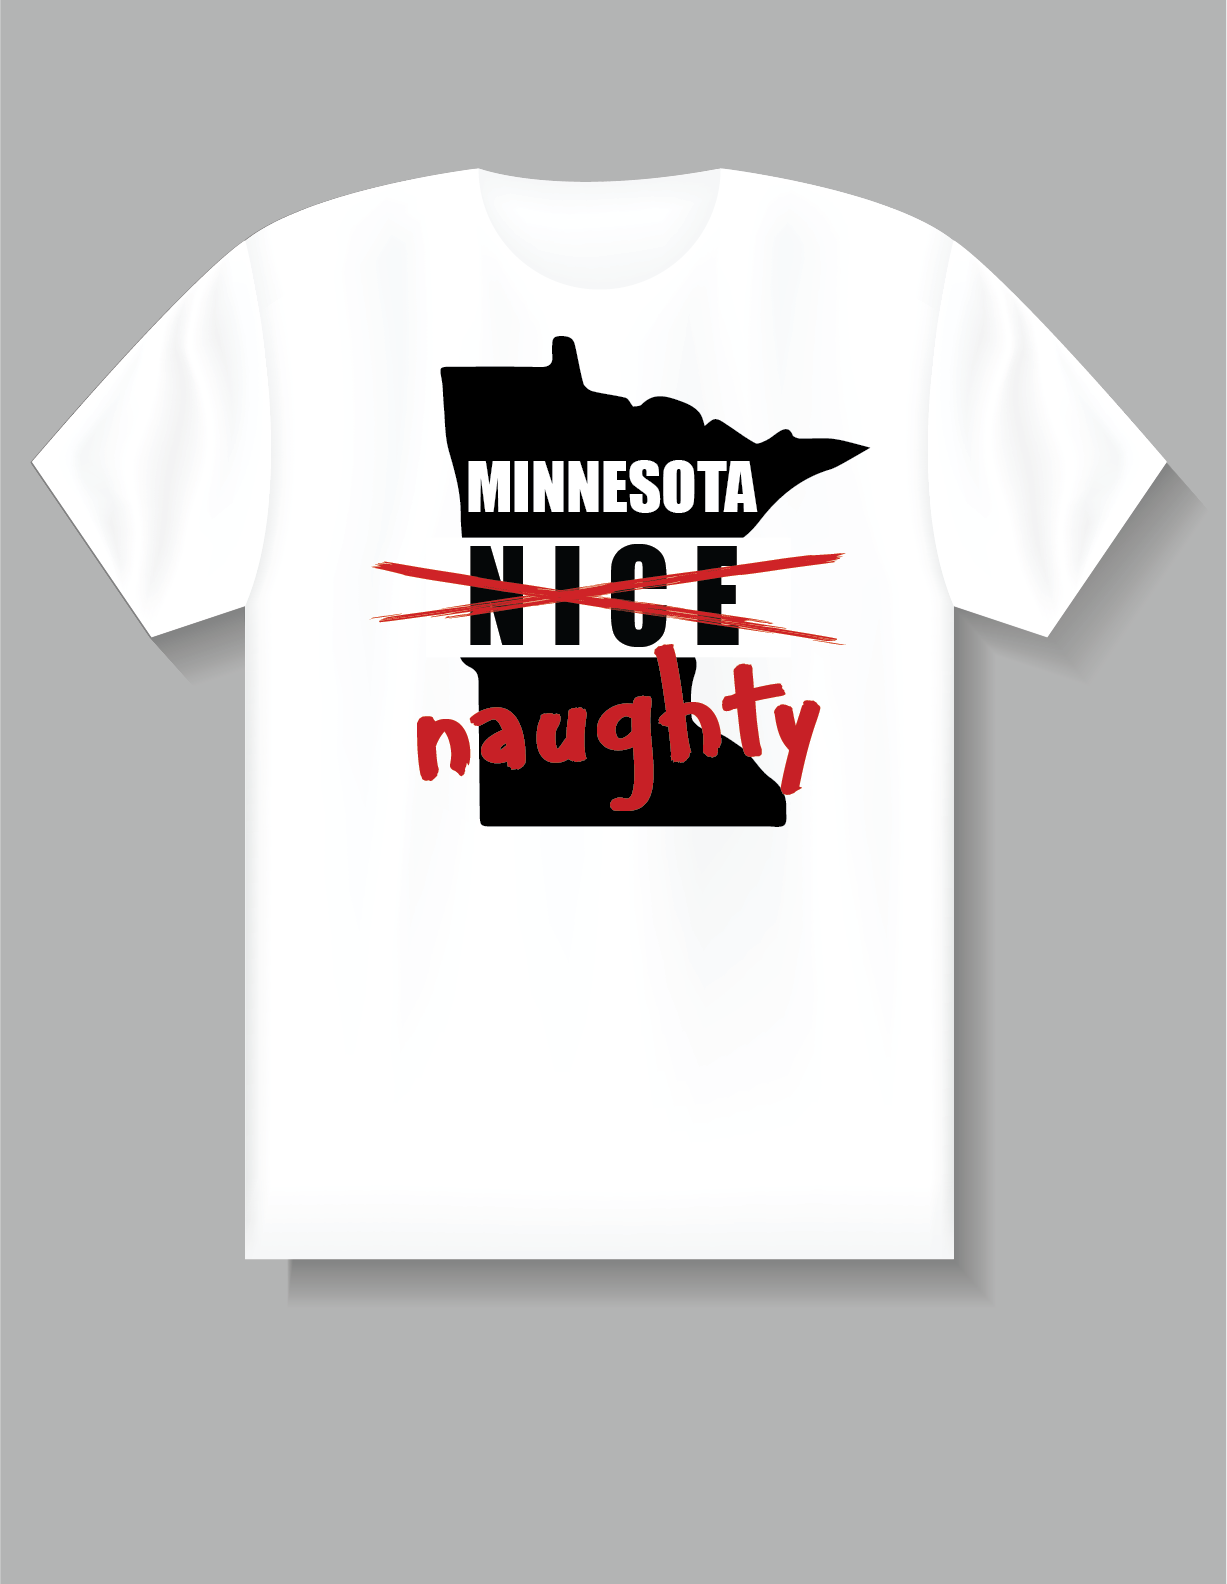 Atons Minnesota Naughty Shirt